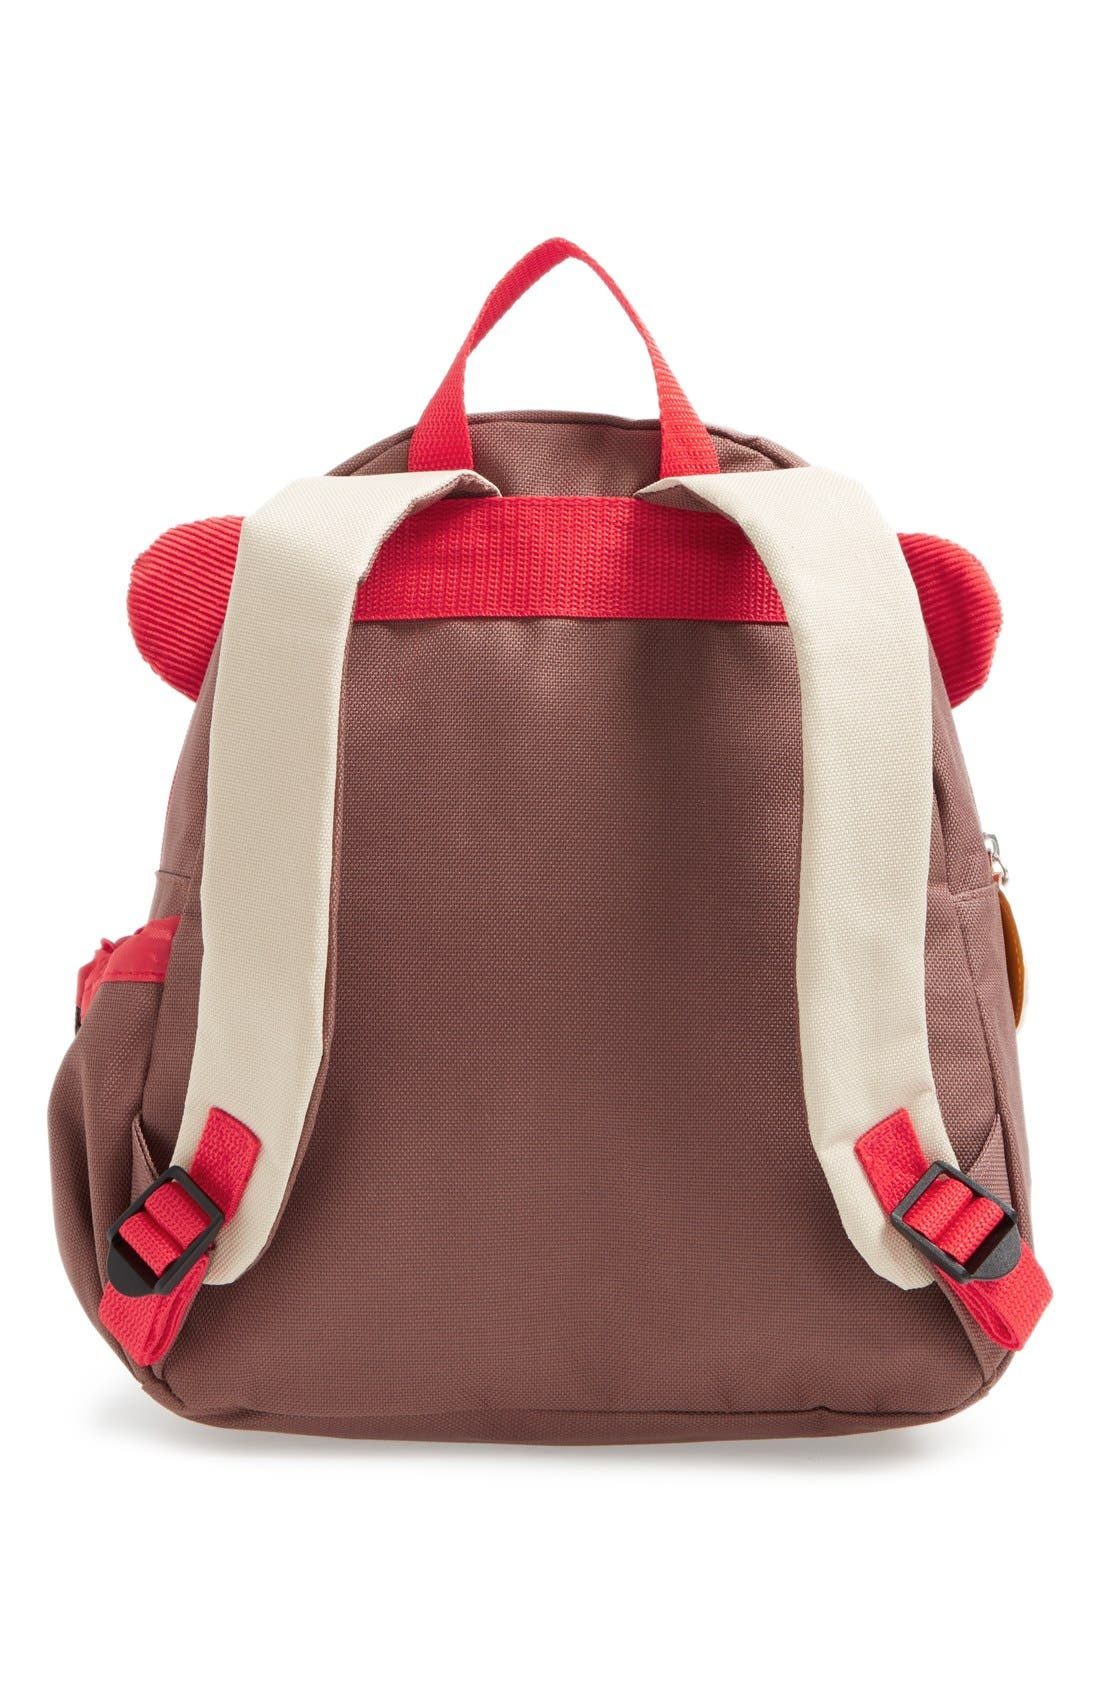 Zoo Pack Backpack,                             Alternate thumbnail 8, color,                             BROWN